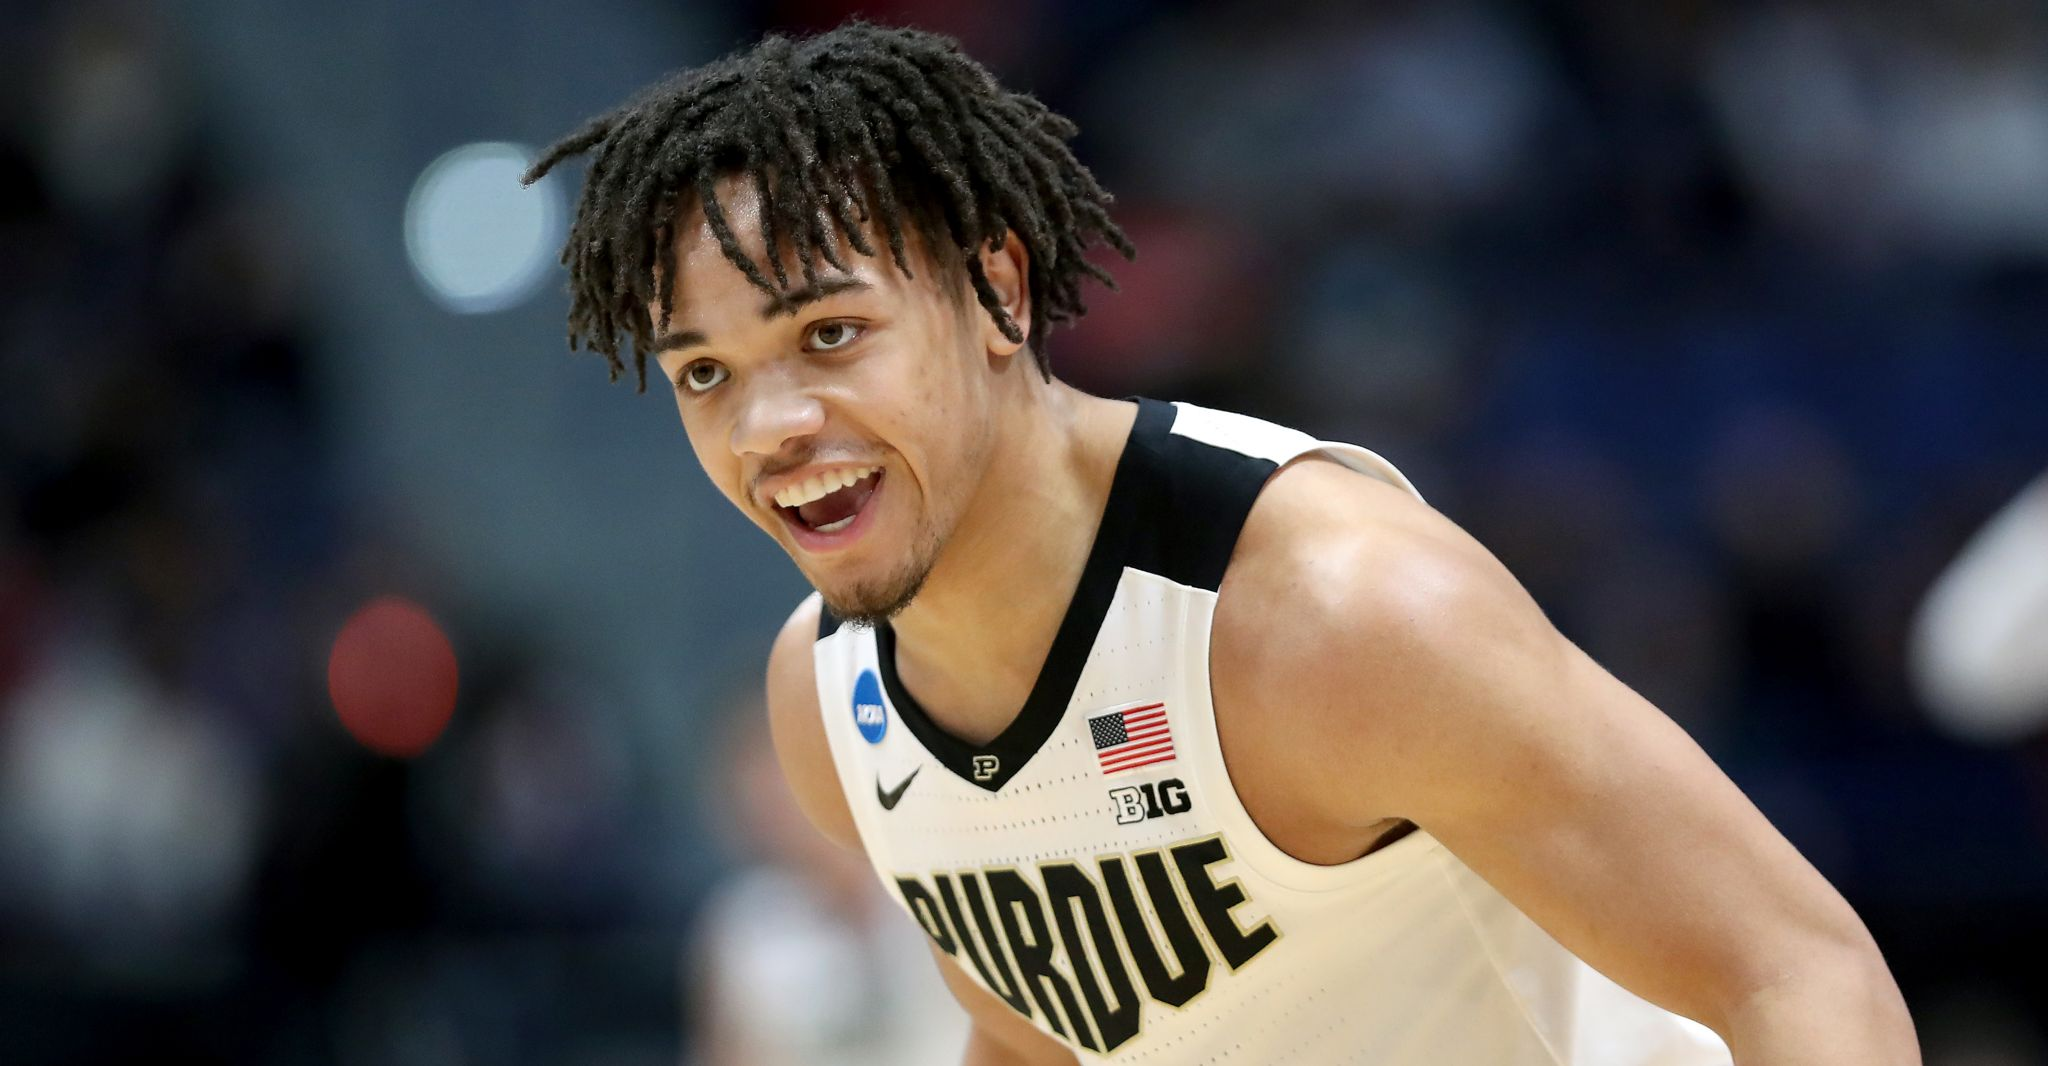 Atascocita's Carsen Edwards drafted by 76ers, then traded to Celtics